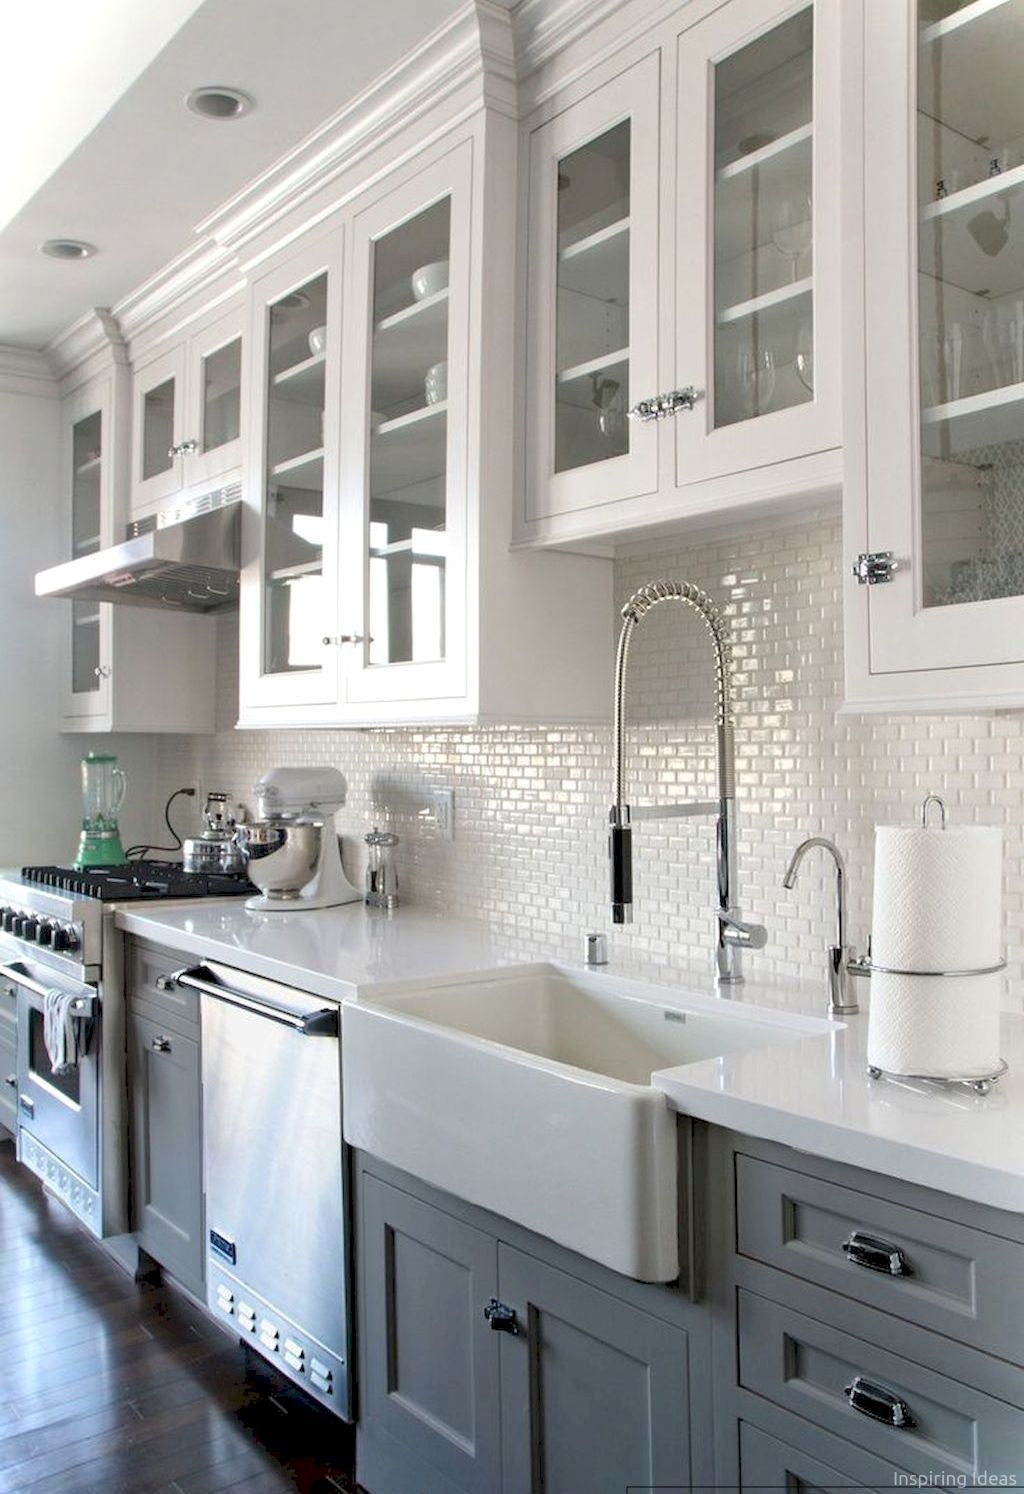 Beautiful Farmhouse Kitchen Cabinet Makeover Ideas 83 Kitchen Backsplash Designs White Kitchen Design Kitchen Design